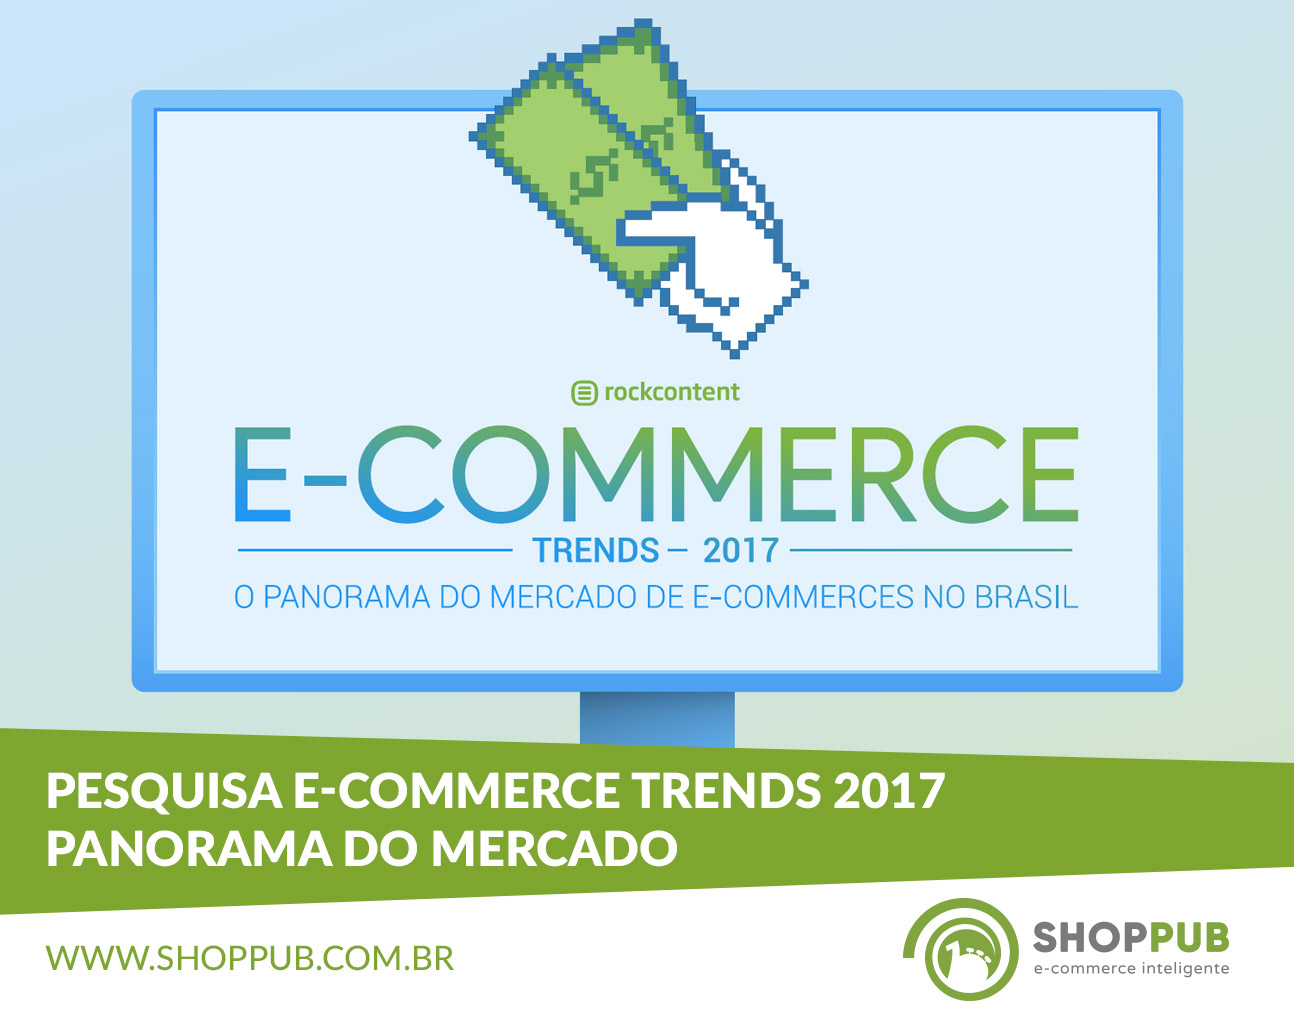 Pesquisa E-commerce Trends 2017 – Panorama do Mercado